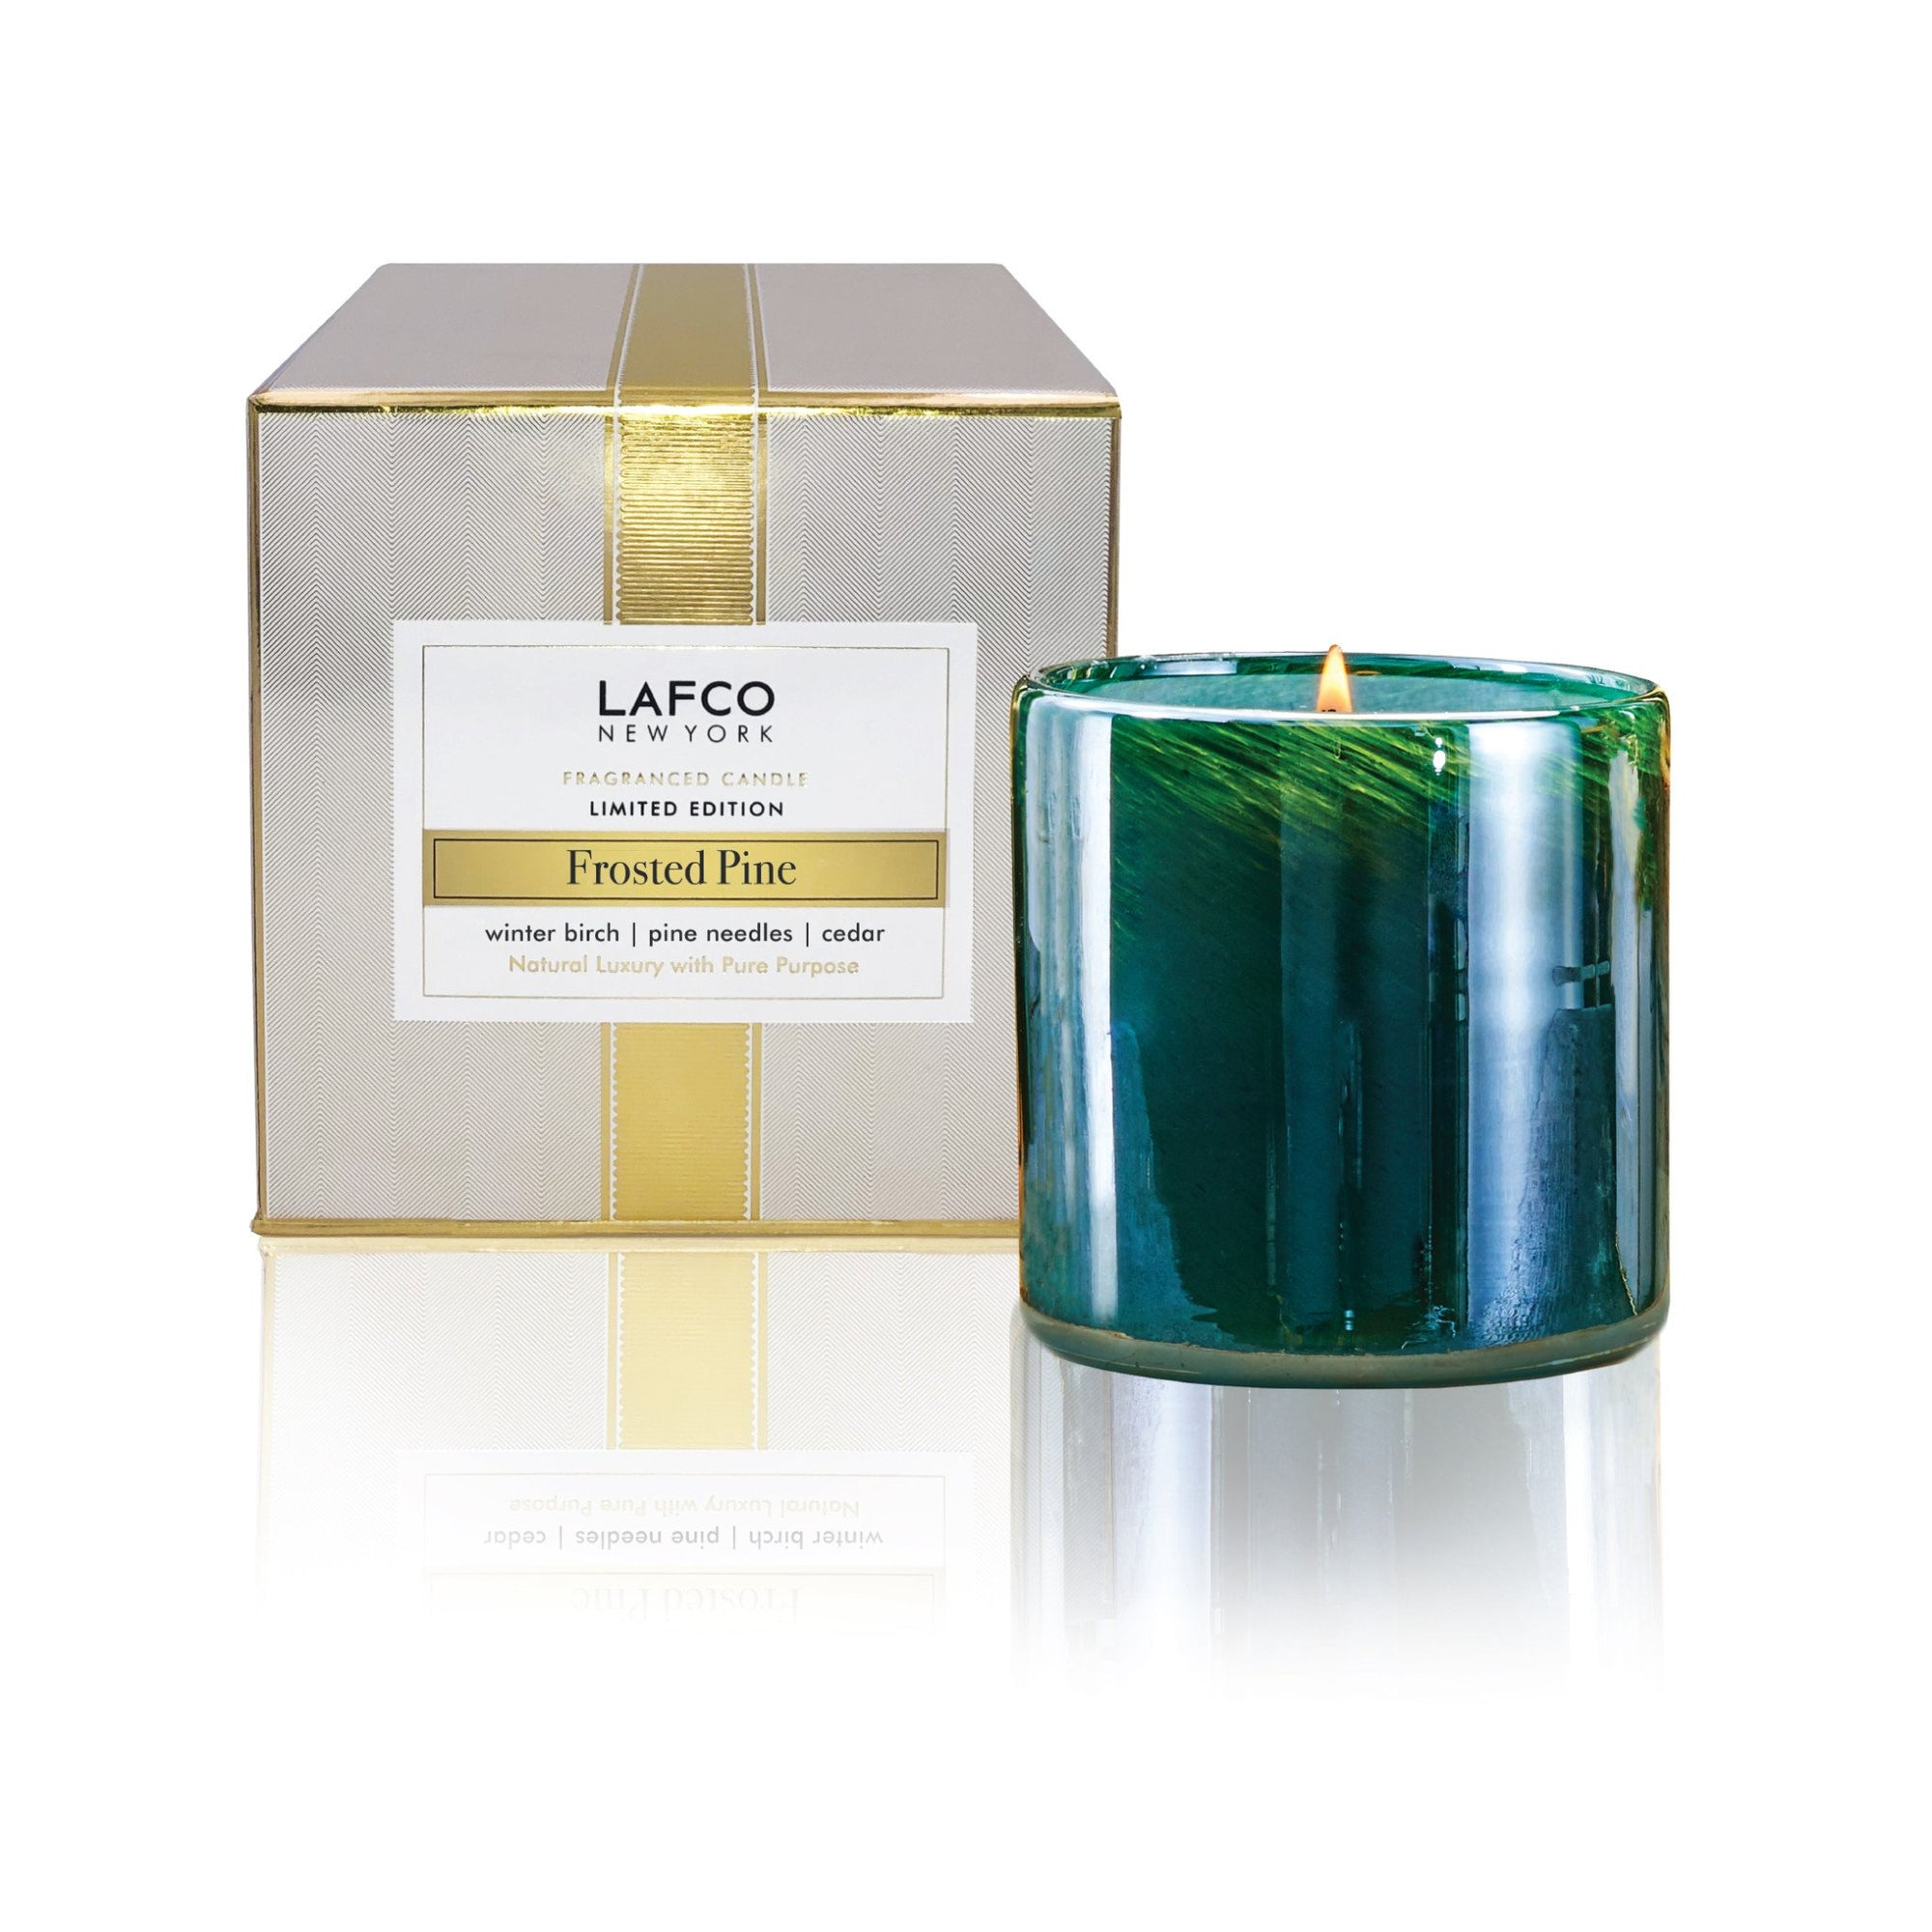 LAFCO Candle - Frosted Pine Signature Candle